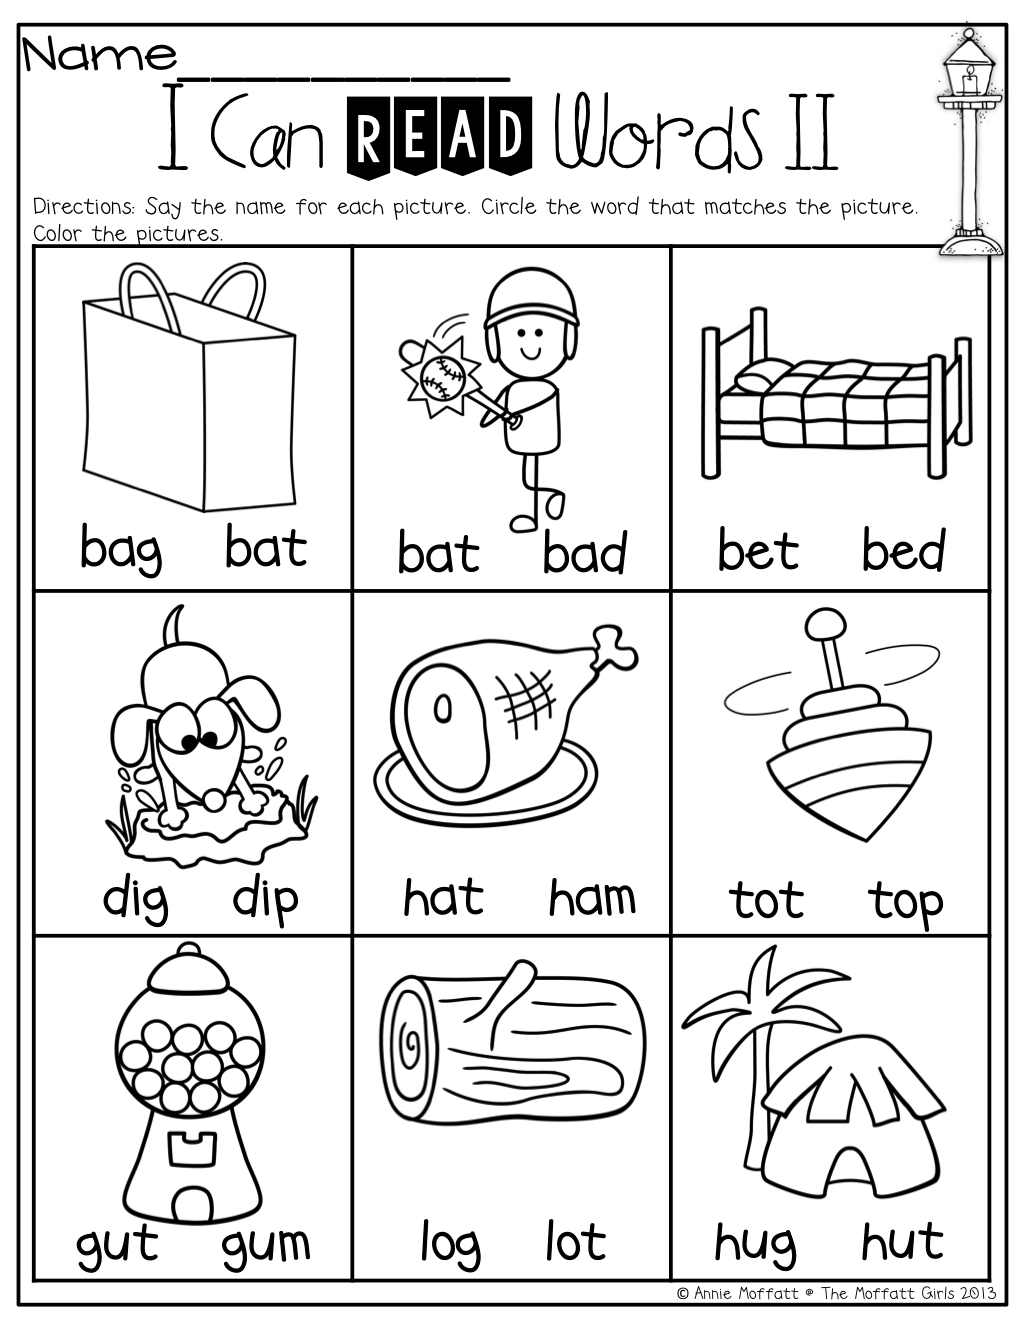 I Can Read Words Simple Cvc Words To Help Beginning